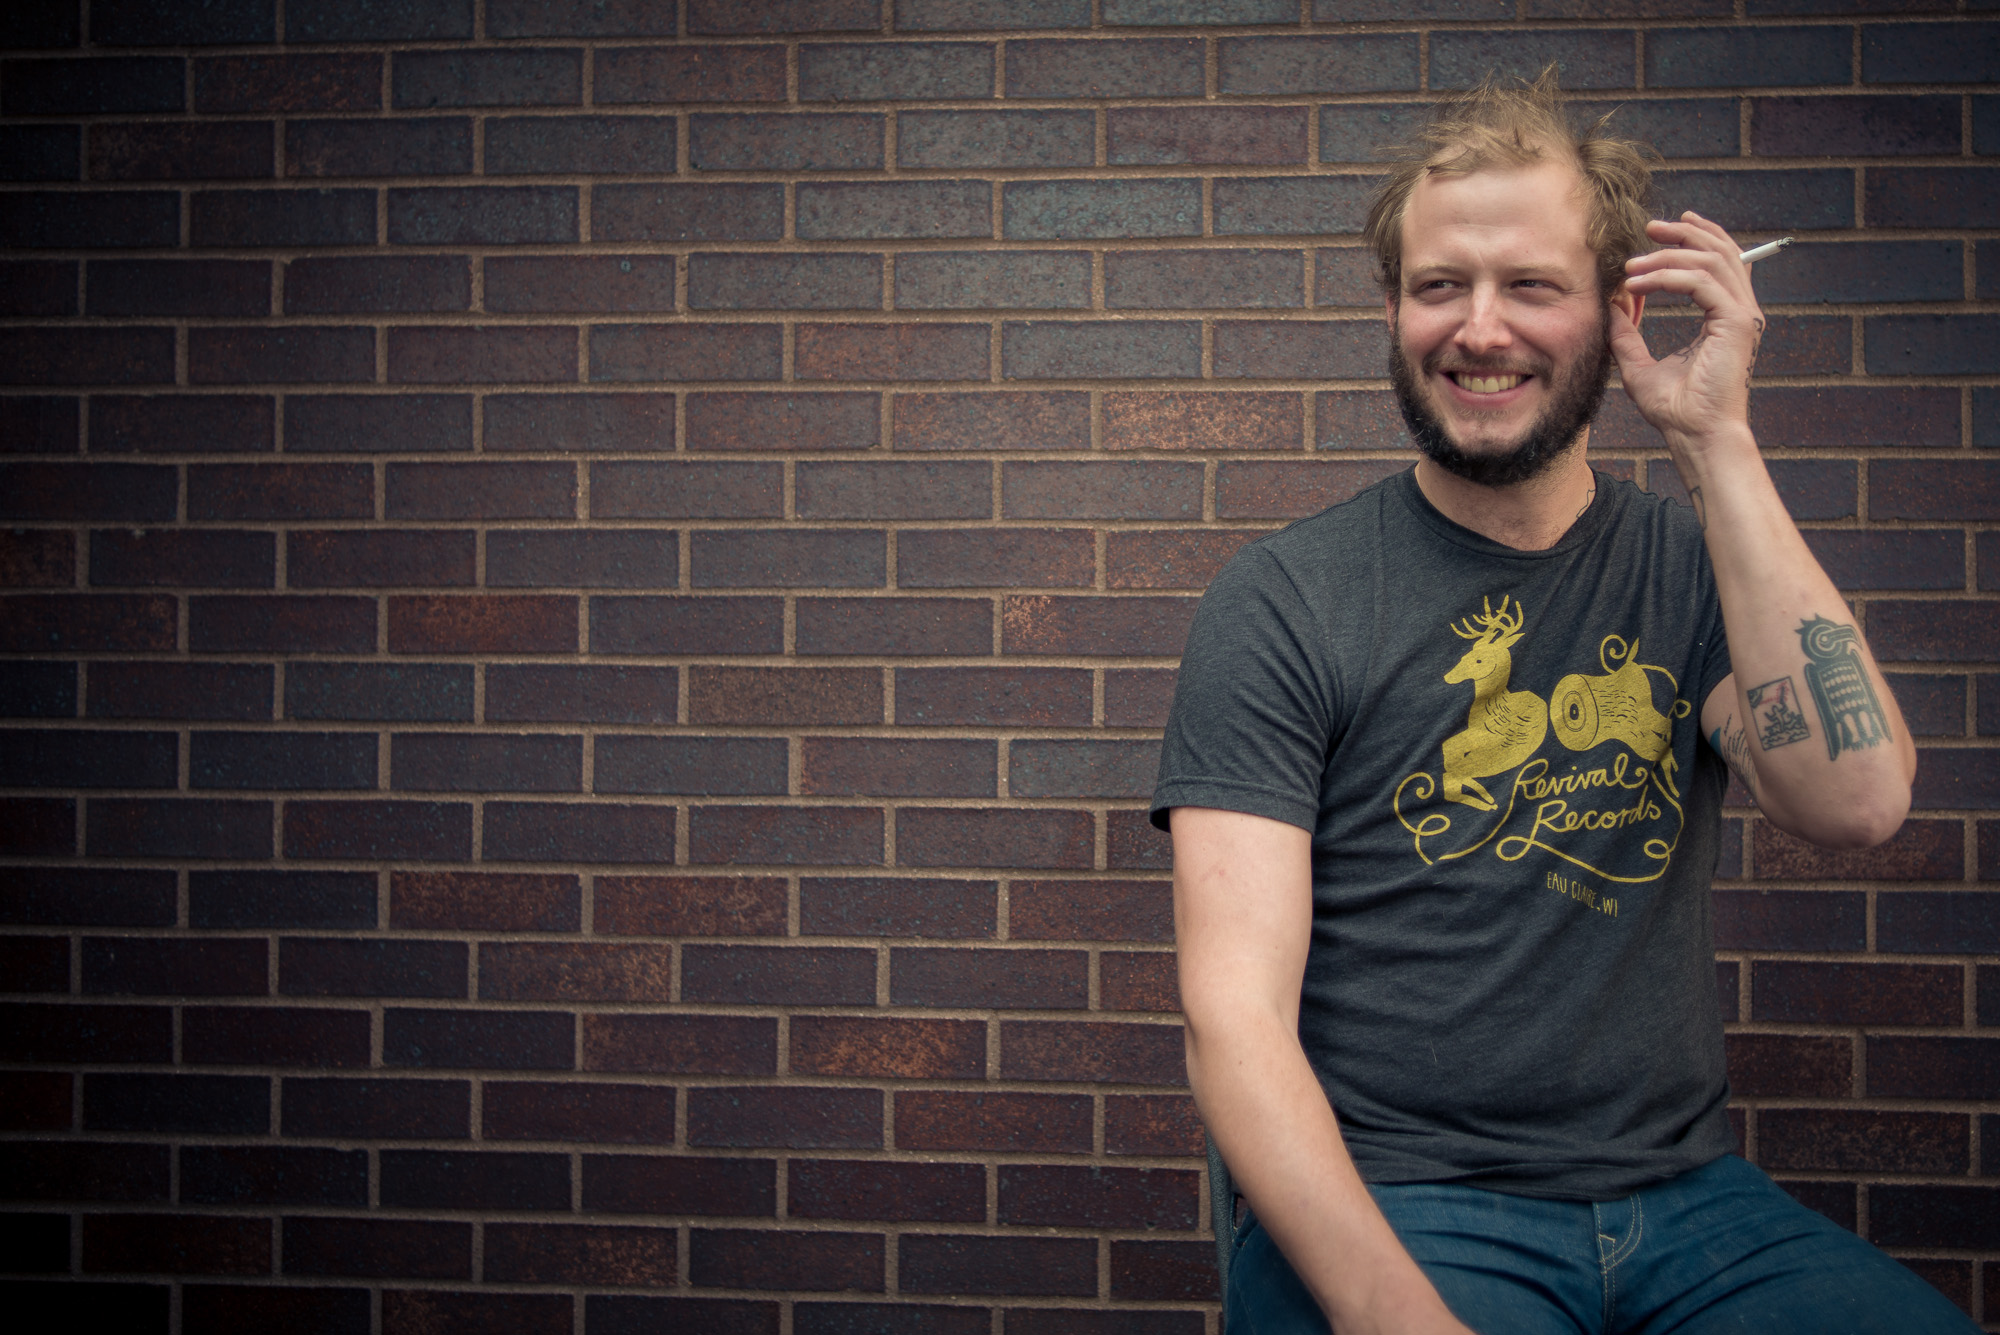 What a way to end the week. Justin Vernon, the musician behind Bon Iver, was at The Current to record a Theft of the Dial, and an interview for the Local Show. I had a few minutes during a recording break to make a few portraits. Here's a little moment from the shoot.